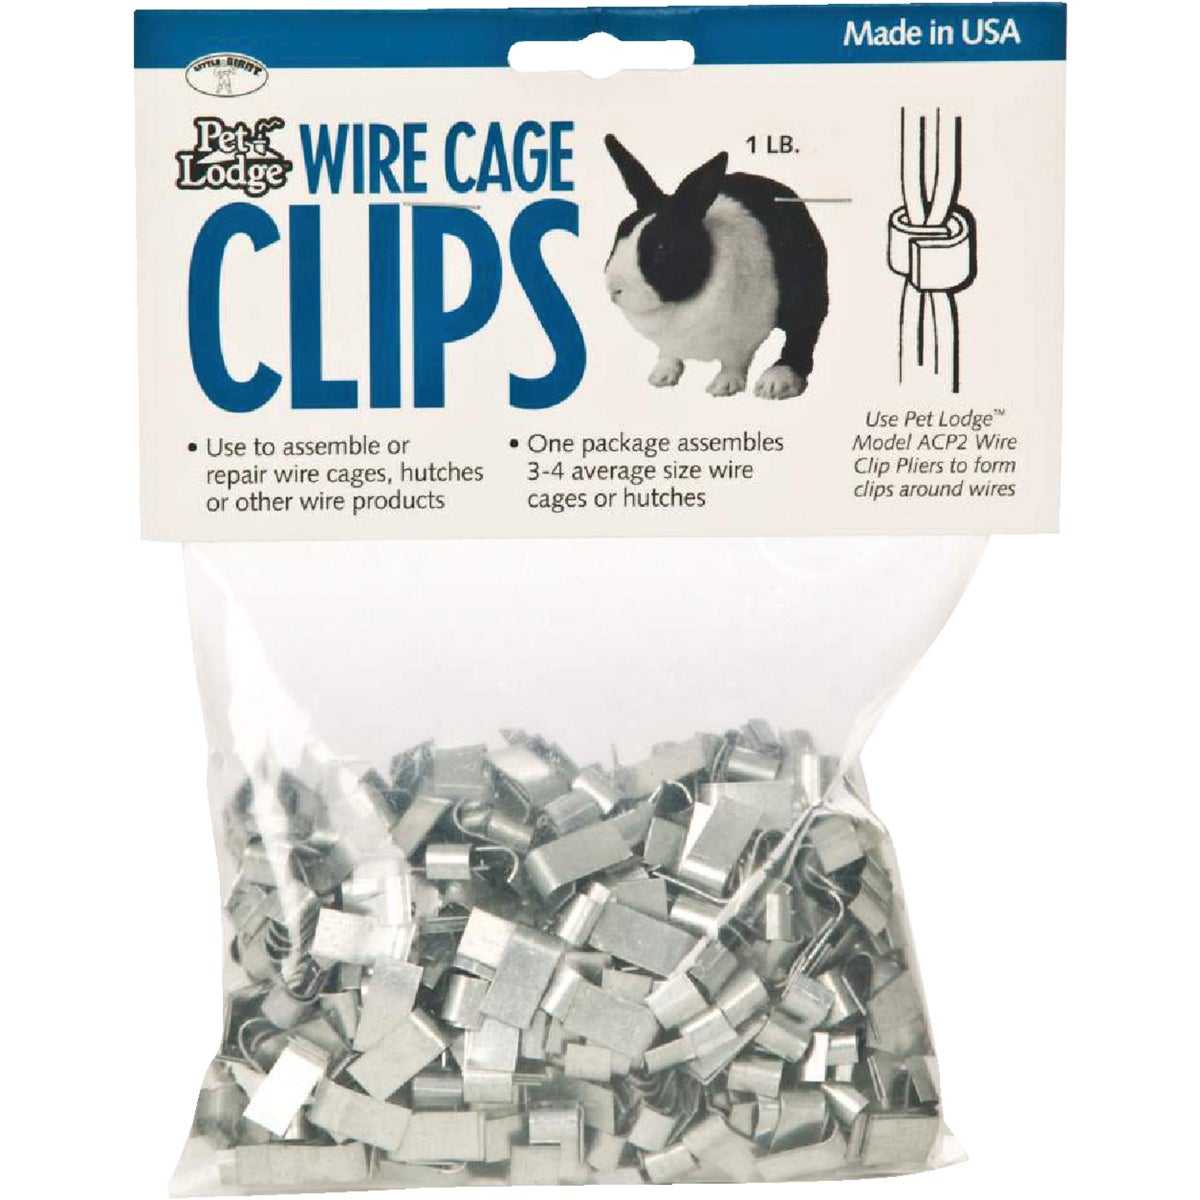 1LB WIRE CAGE J CLIPS - ACC1 by Miller Manufacturing